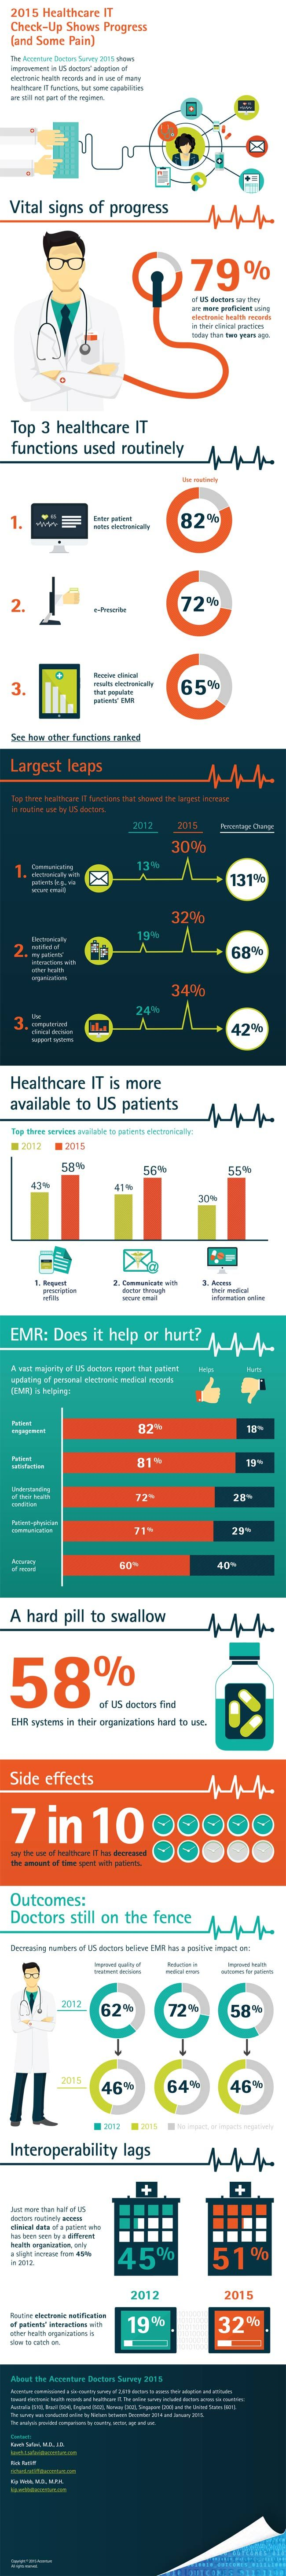 Accenture-2015-Healthcare-IT-Check-Up-Shows-Progress-Some-Pain-Infographic